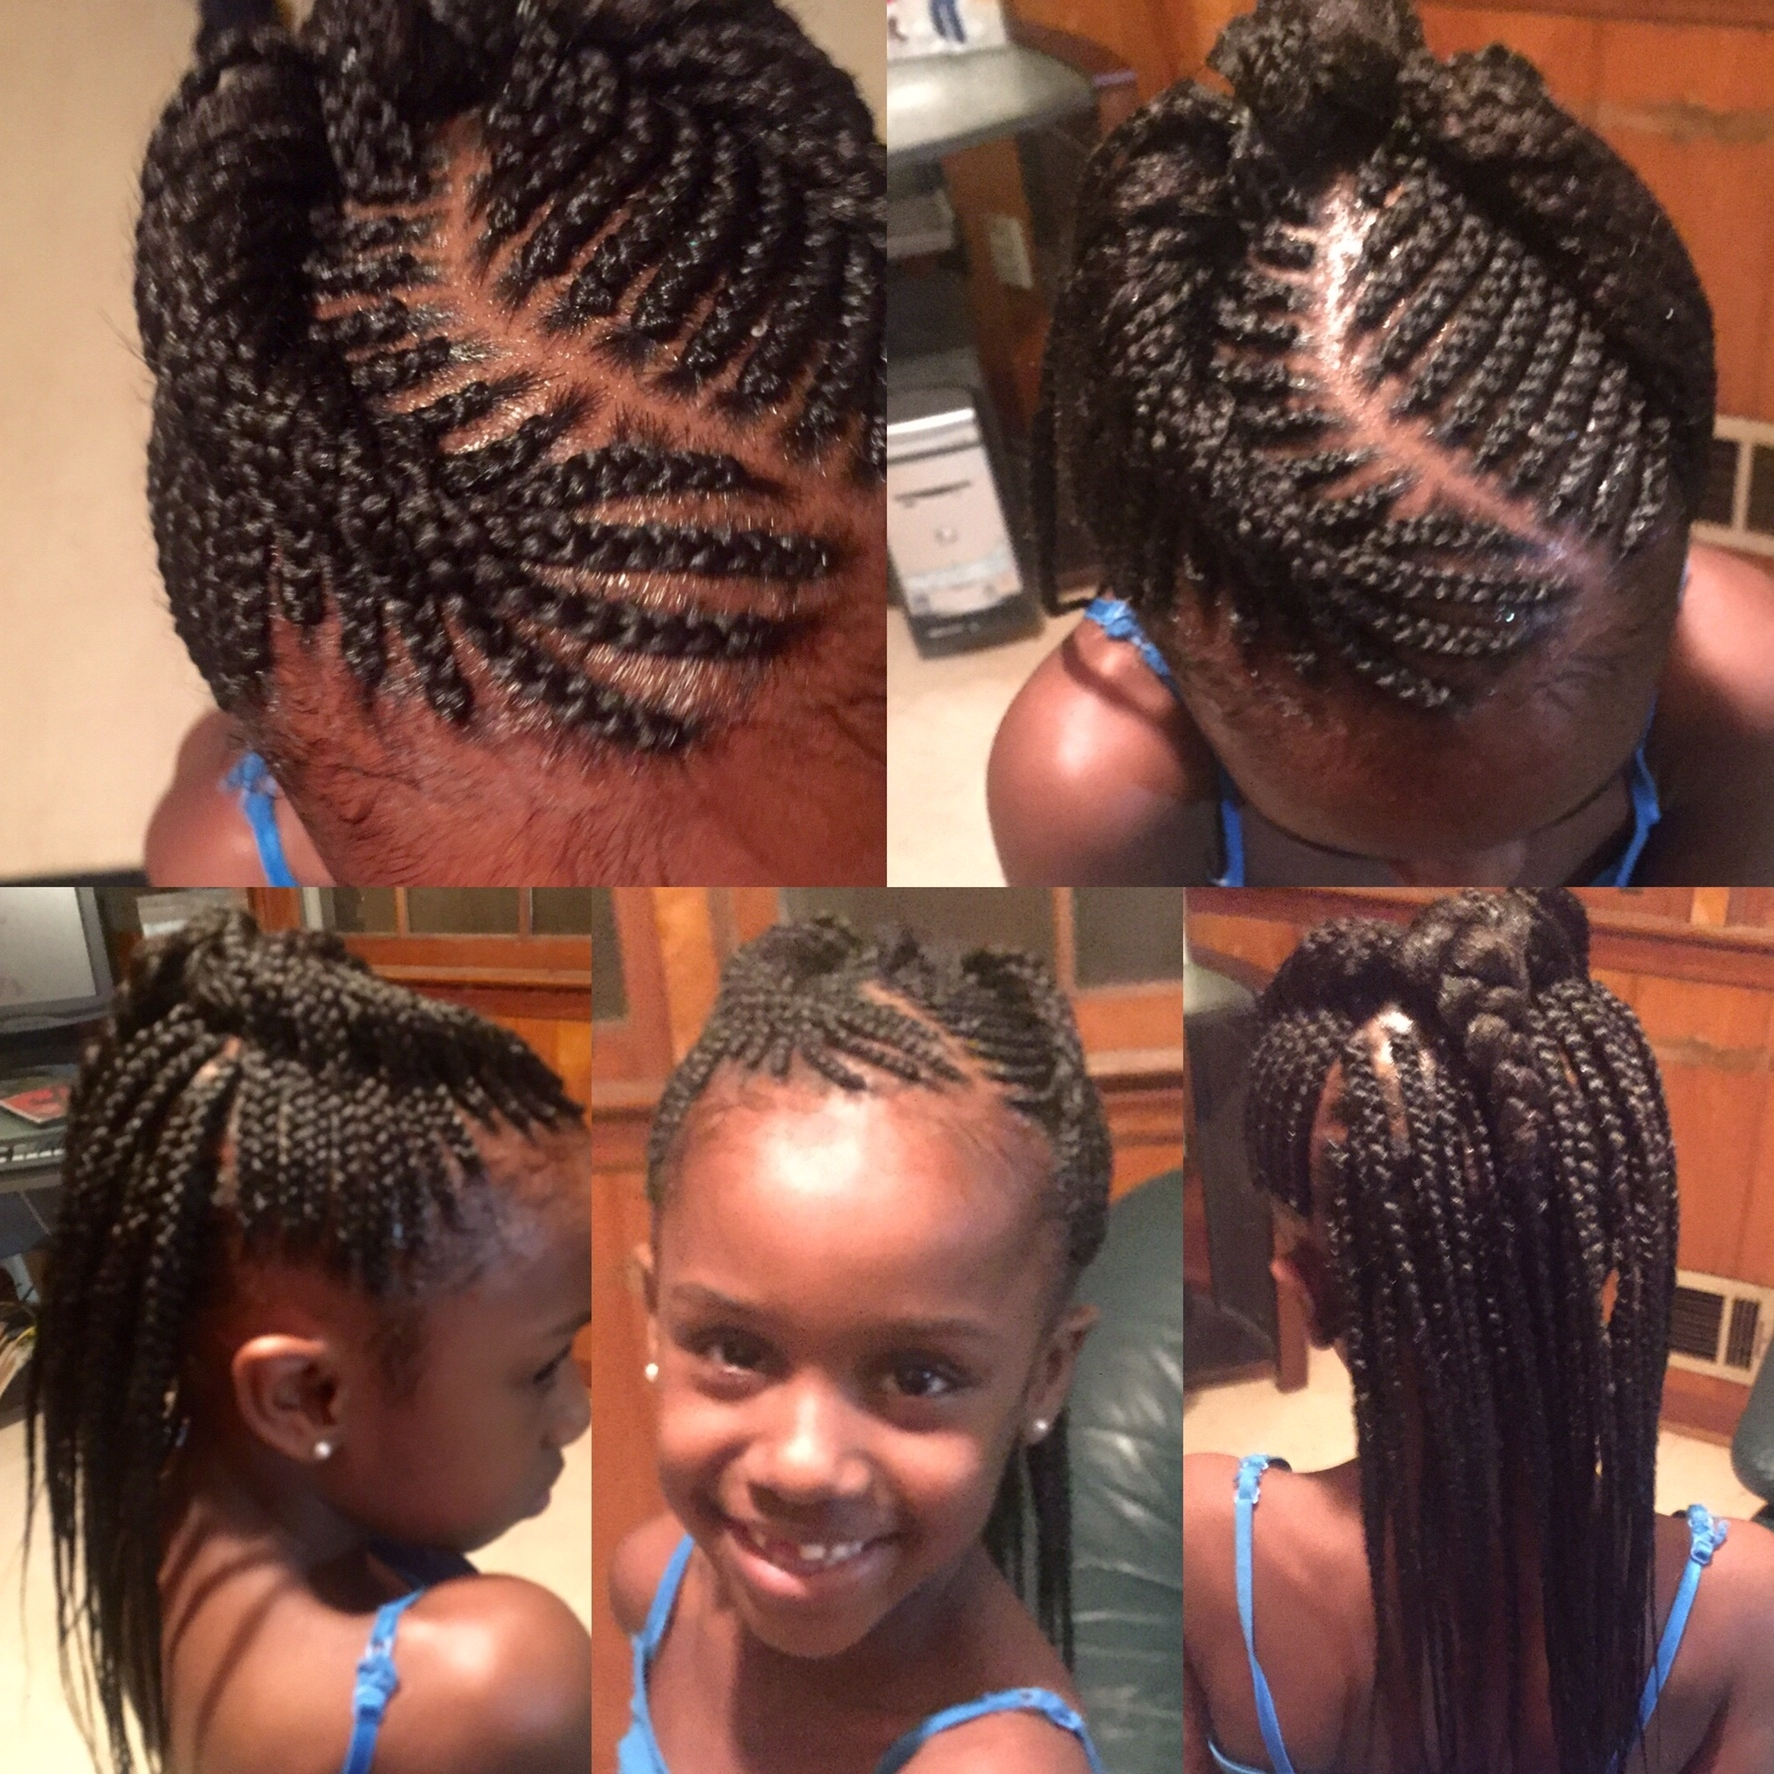 Most Current Cornrows Hairstyles For Kids In Cornrow Braid Hairstyles For Kids Amusing Hairstyles For Kids Braids (View 10 of 15)